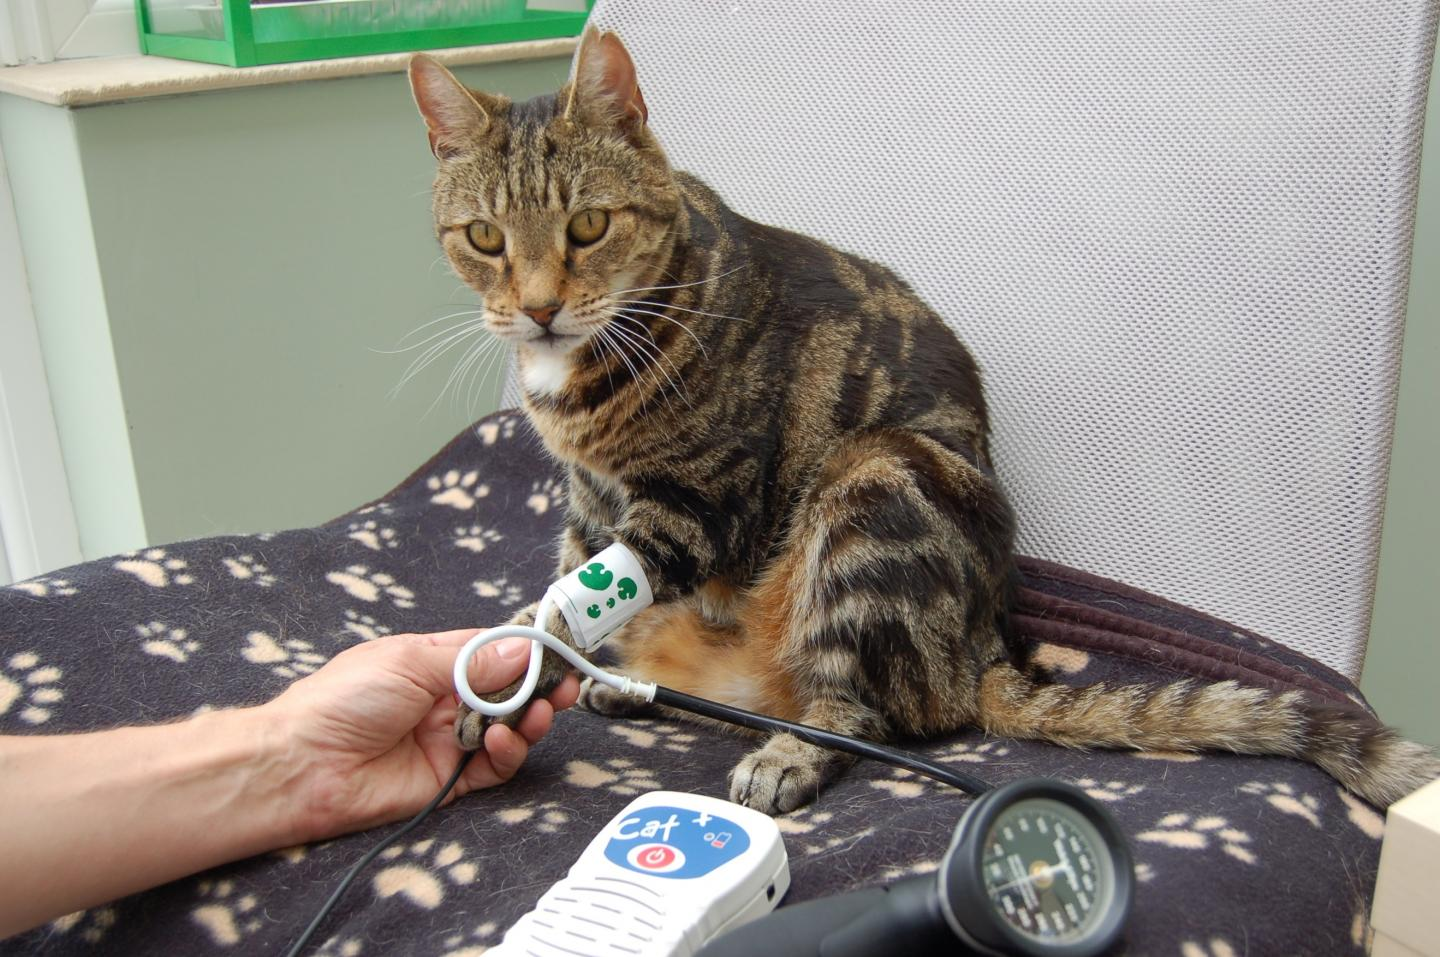 Cat Having its Blood Pressure Checked